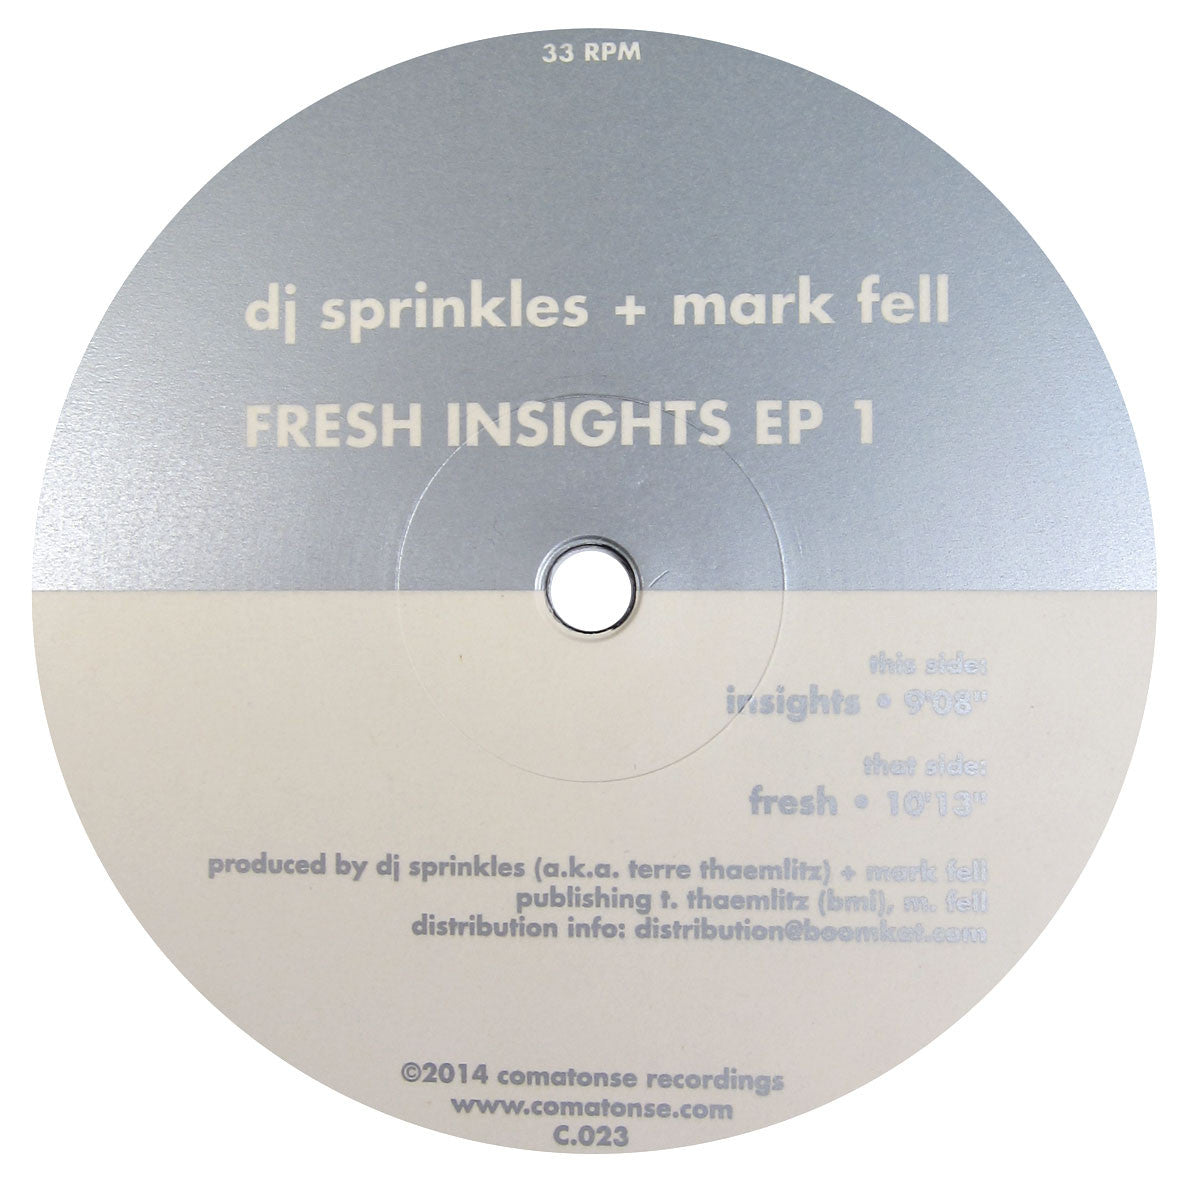 DJ Sprinkles + Mark Fell: Fresh Insights EP 1 Vinyl 12""